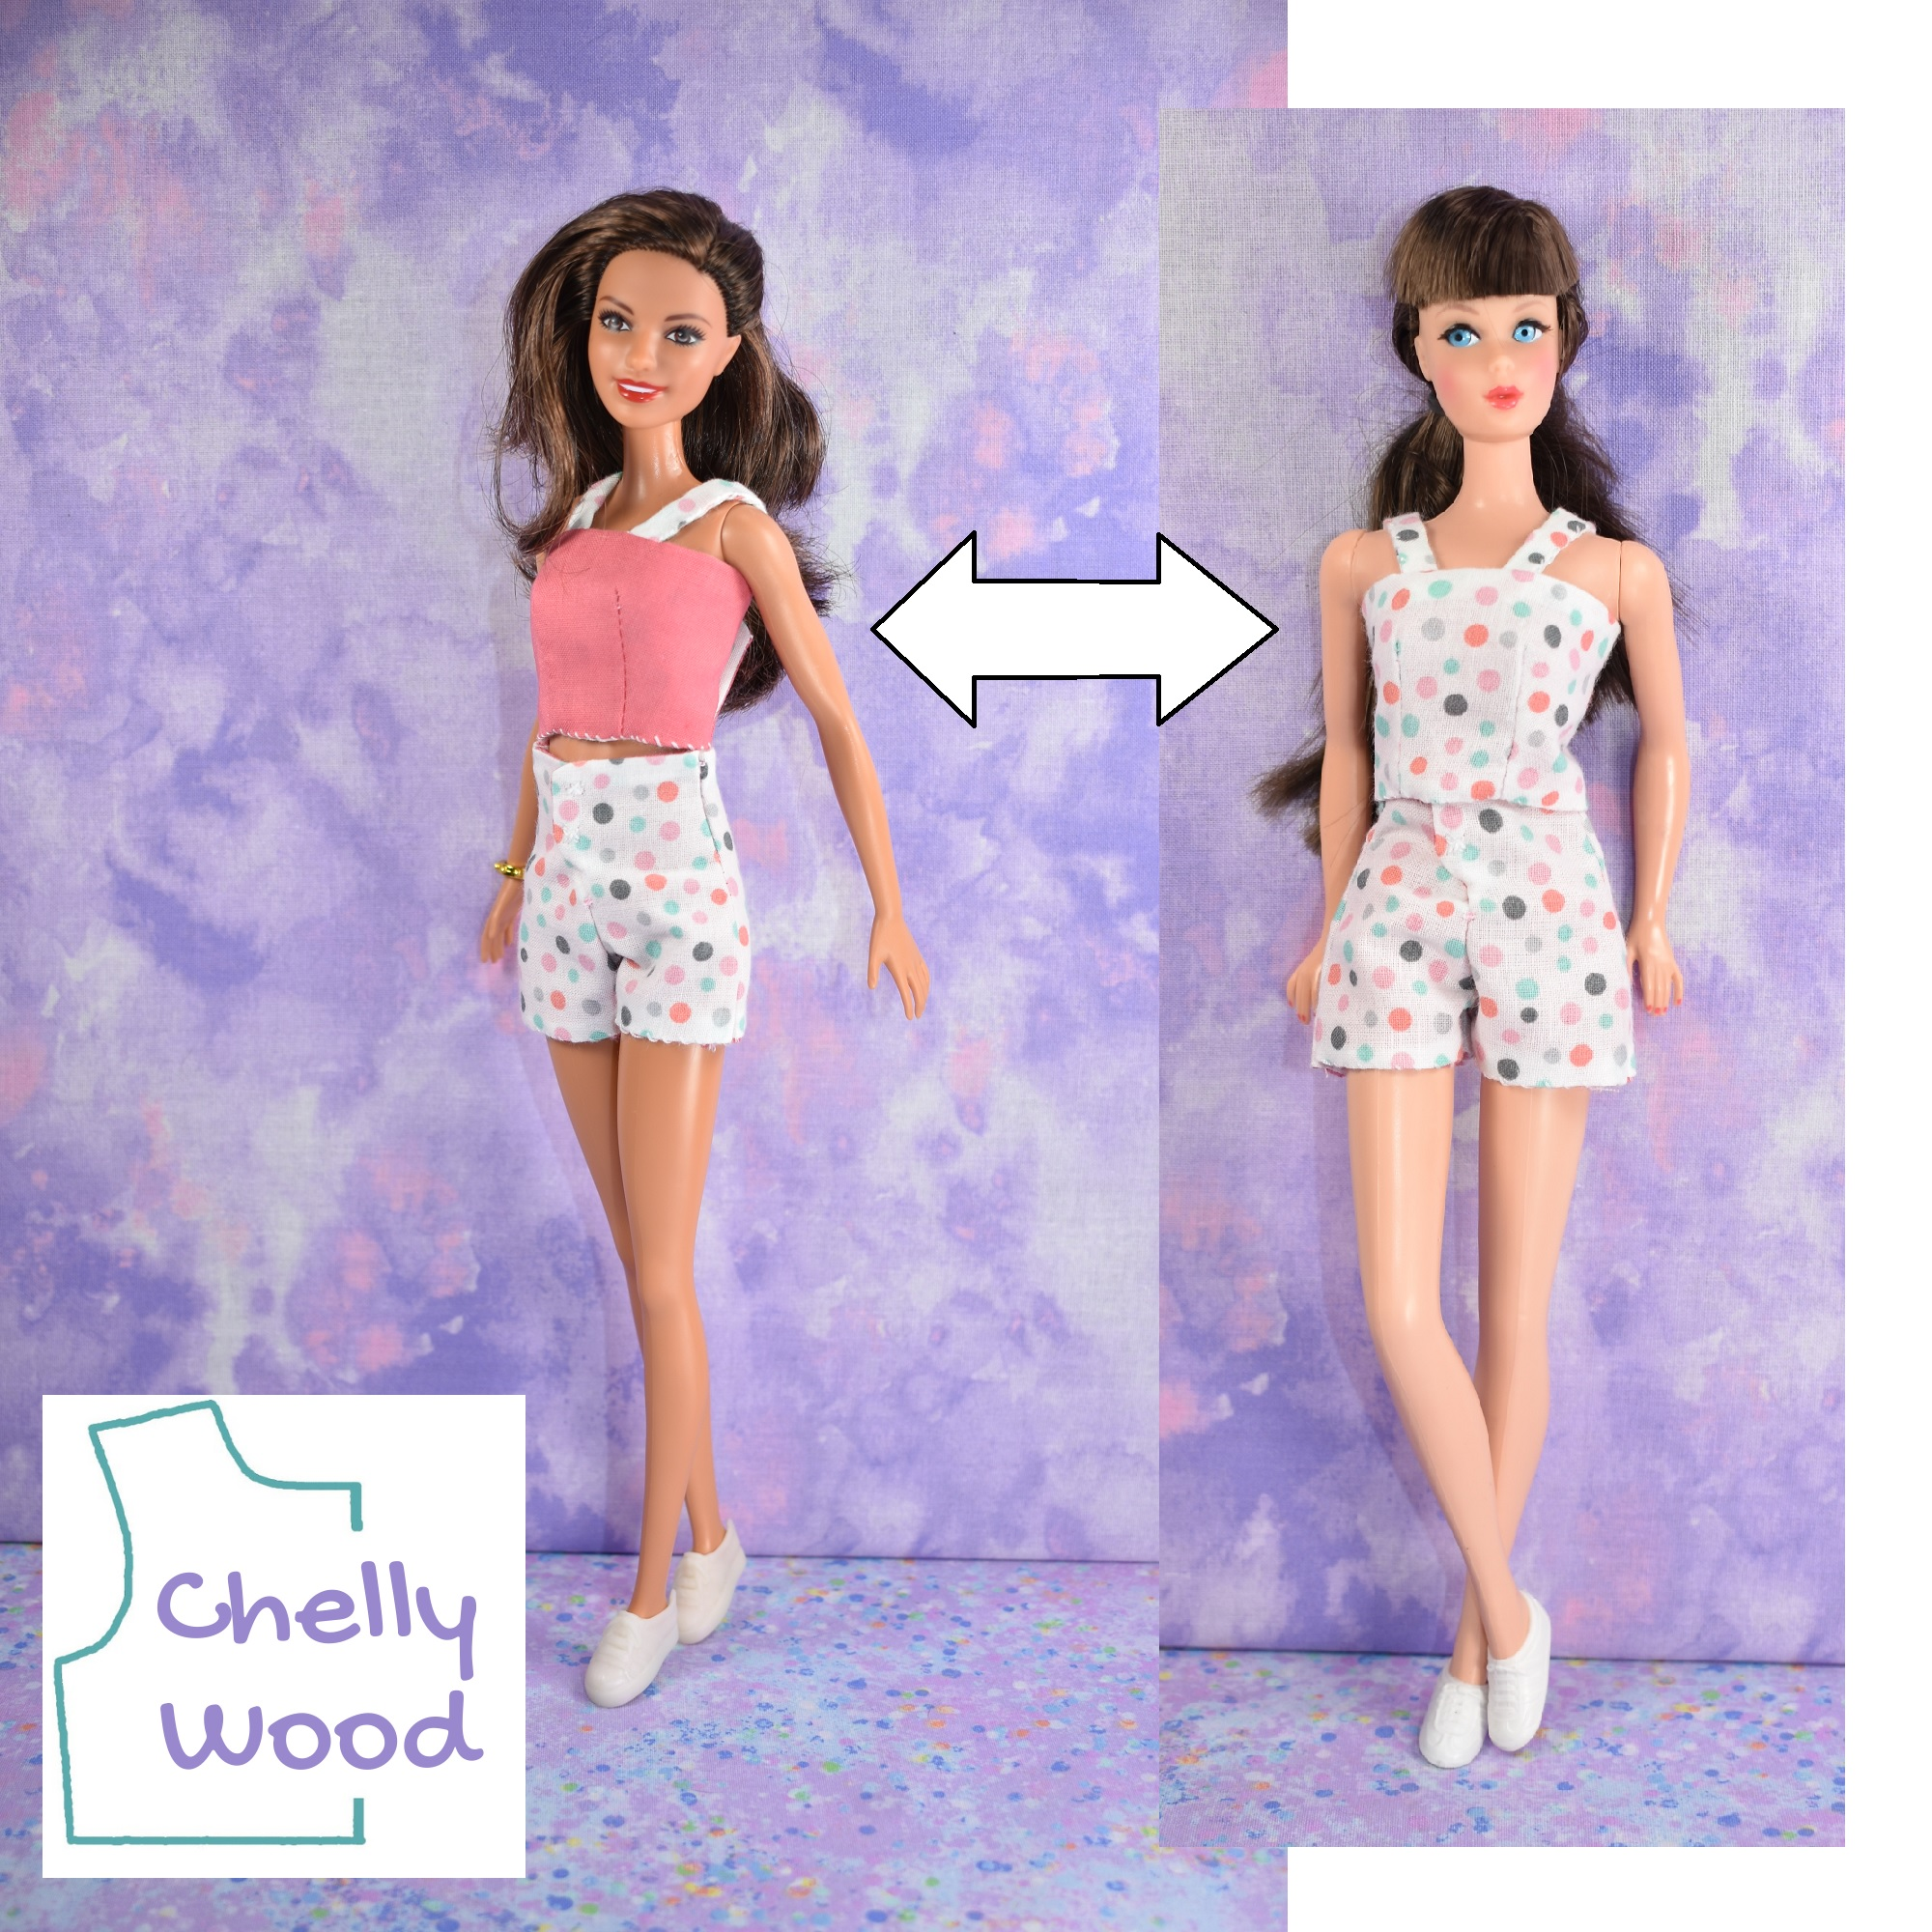 The image shows a Tall Barbie wearing the salmon-colored side of the reversible tank top with polka dot high-waist, fly front shorts. An arrow connects her to the image of a vintage Barbie wearing the polka dot side of the reversible tank top with the same high-waist, fly-front polka dot shorts. The watermark reminds us that these images come from ChellyWood.com, a website best known for offering free printable PDF sewing patterns for making doll clothes to fit dolls of many shapes and all different sizes. If you'd like the free doll clothes patterns for making this reversible tank top with high-waist fly front shorts to fit your 11 inch fashion dolls, please click on the link in the caption.